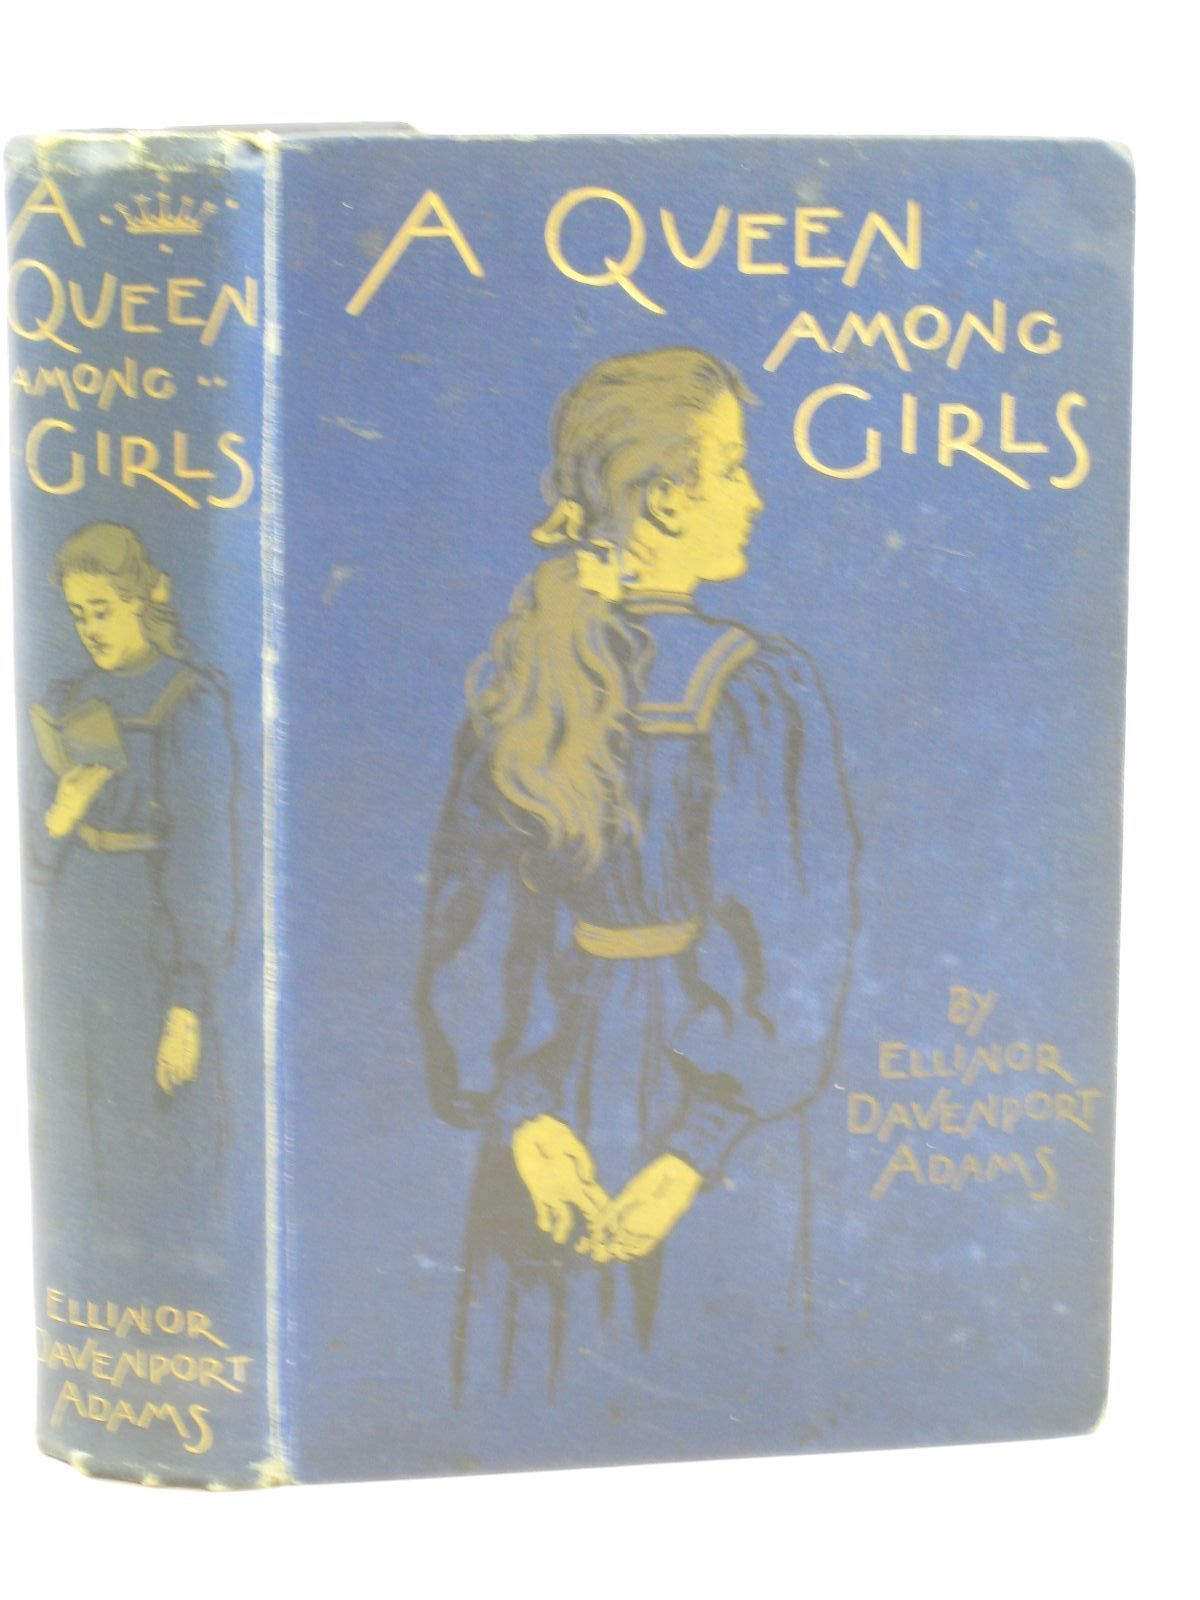 Photo of A QUEEN AMONG GIRLS written by Adams, Ellinor Davenport illustrated by Copping, Harold published by Blackie & Son Ltd. (STOCK CODE: 1406377)  for sale by Stella & Rose's Books